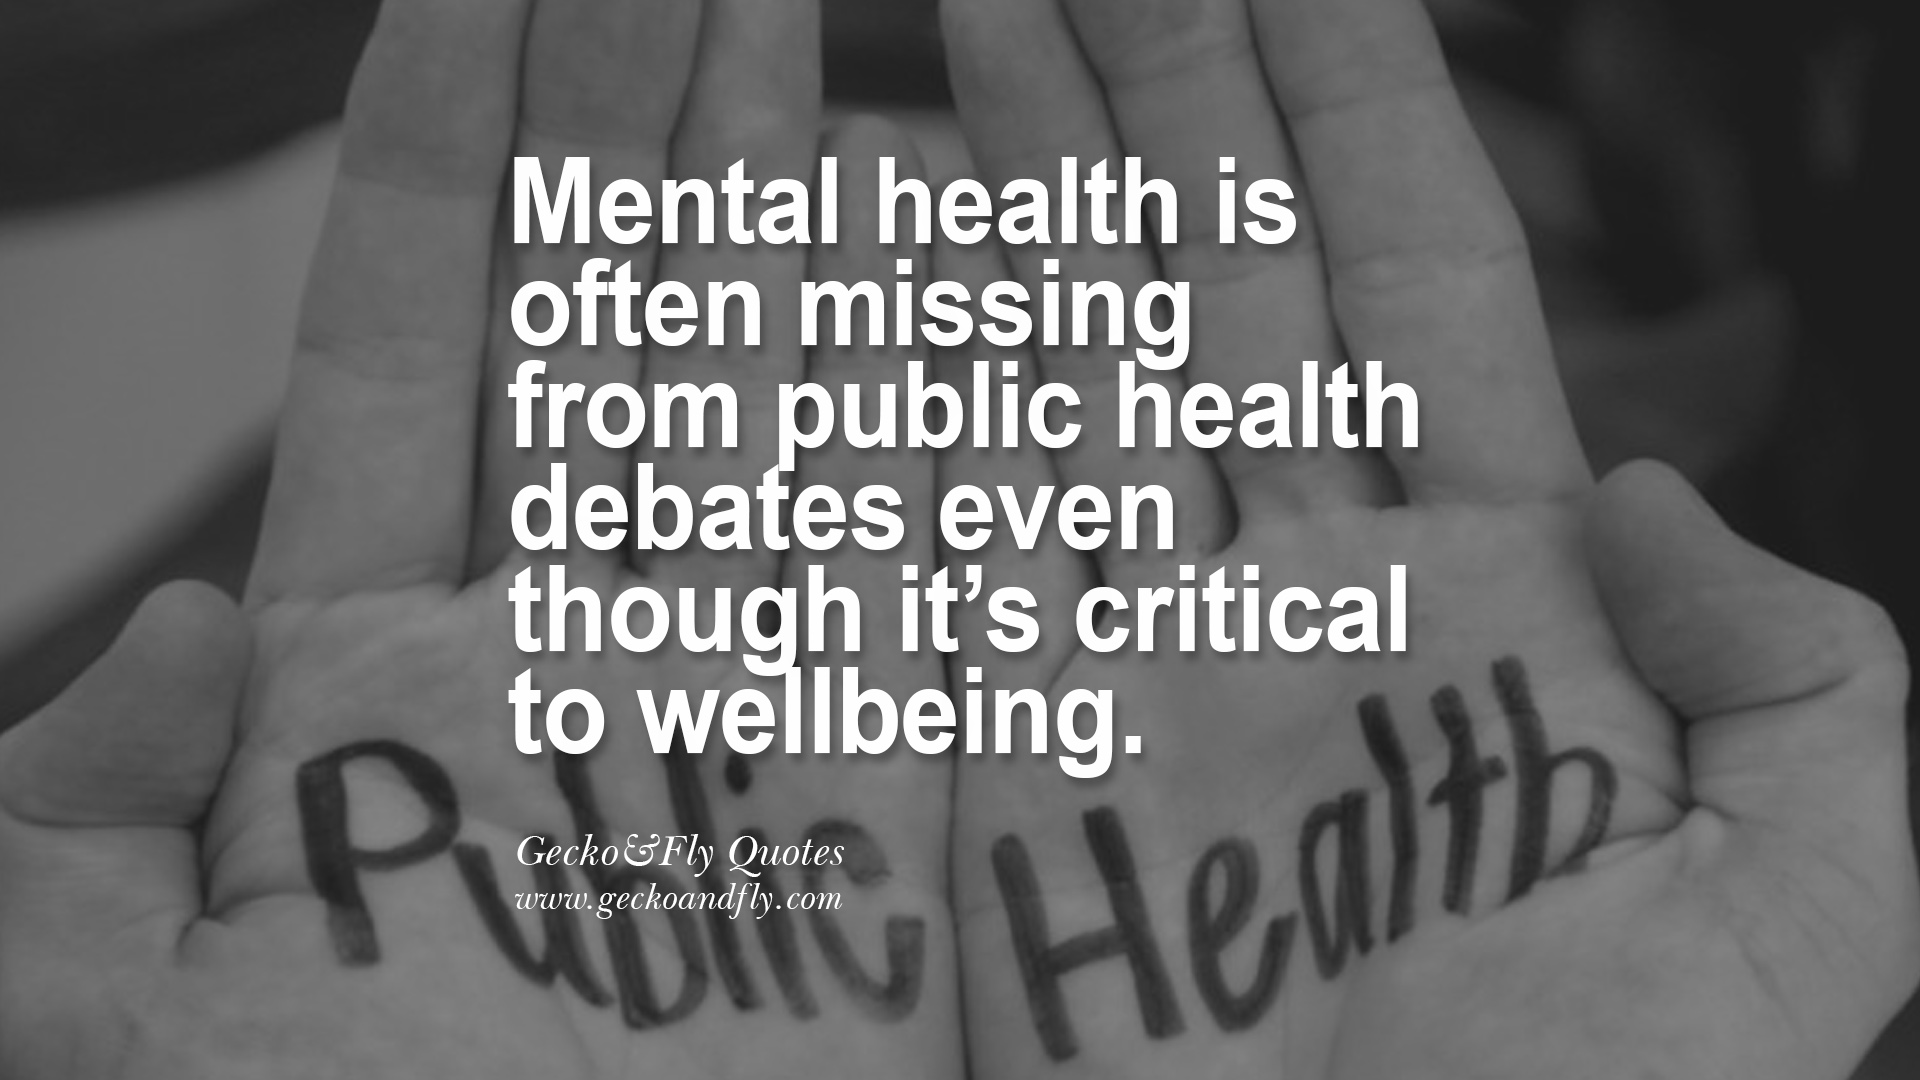 HEALTH/PHYSICAL EDUCATION / Health and Physical Education  |Community Health And Wellness Quotes